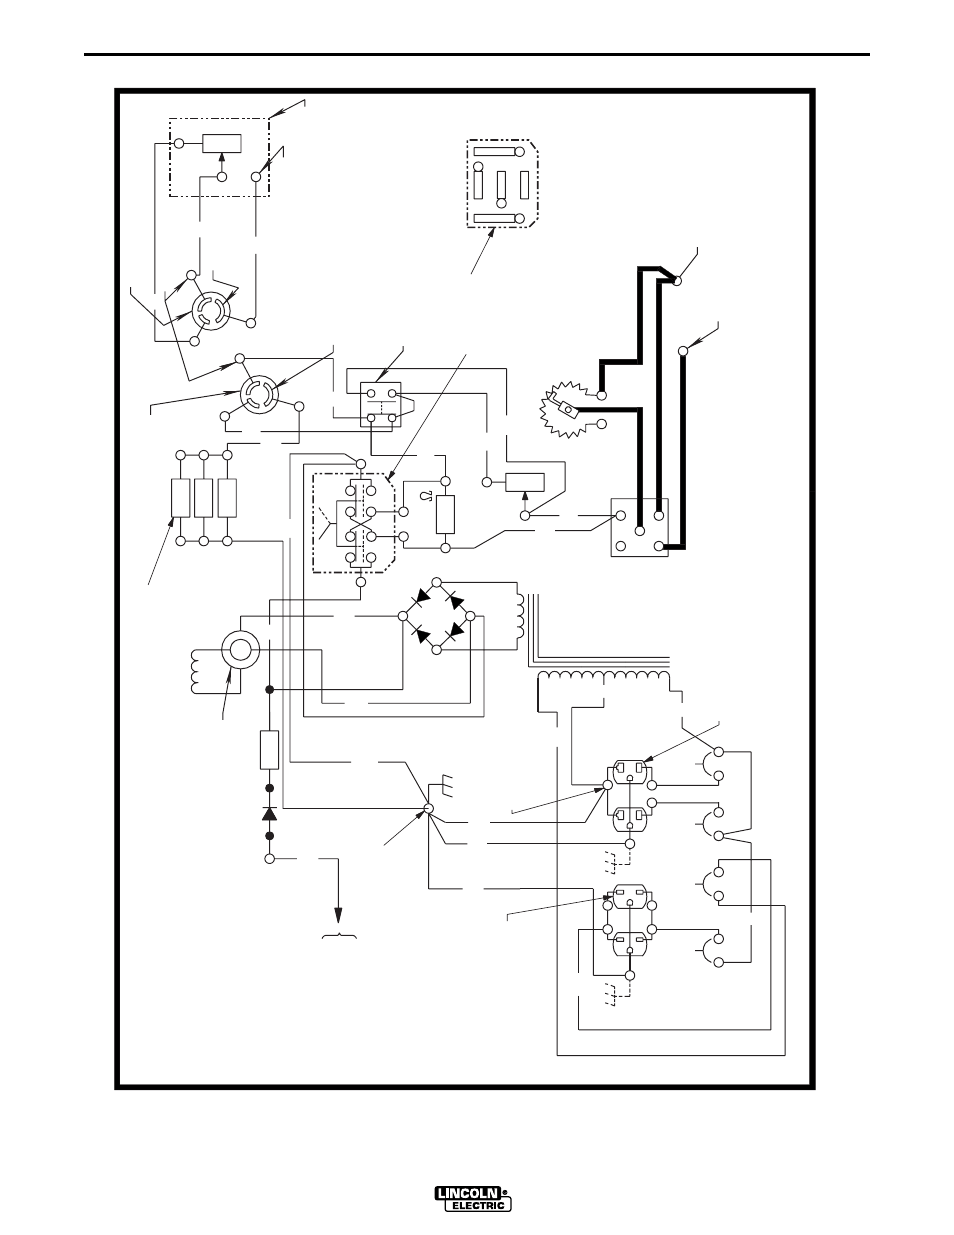 medium resolution of lincoln ac 225 wiring diagram wiring diagrams scematic lincoln 225 ac power requirements lincoln 225 ac schematic